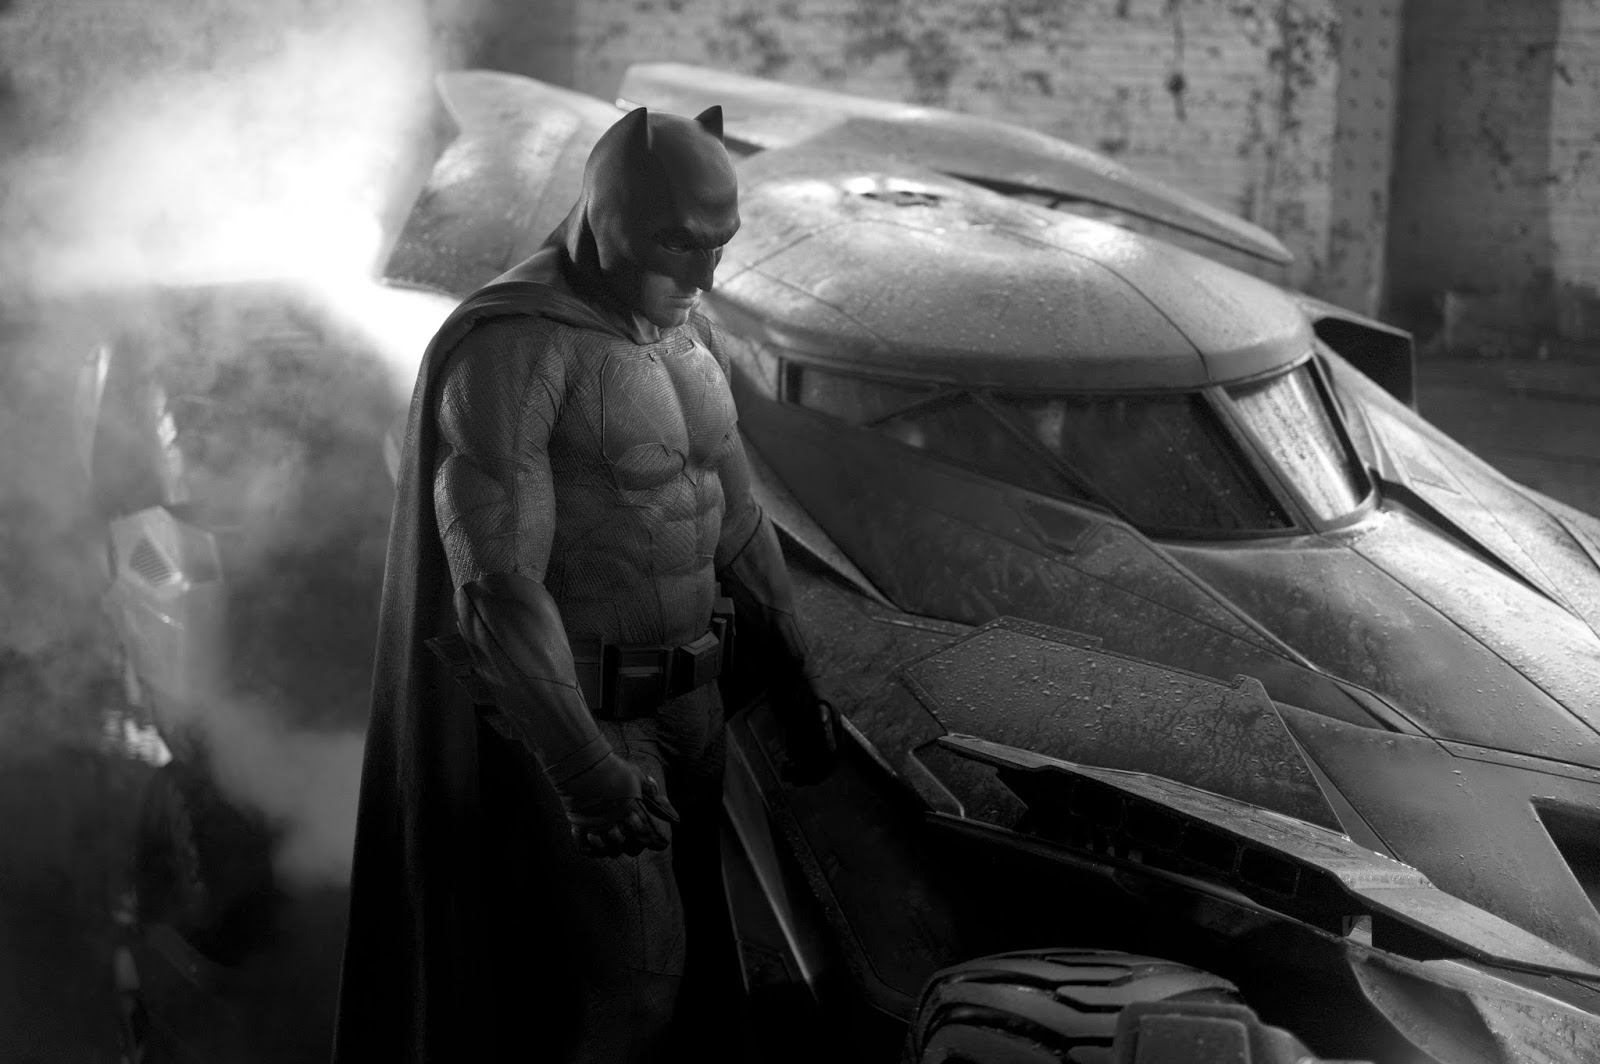 Batmobile and Batman v Superman: Dawn of Justice